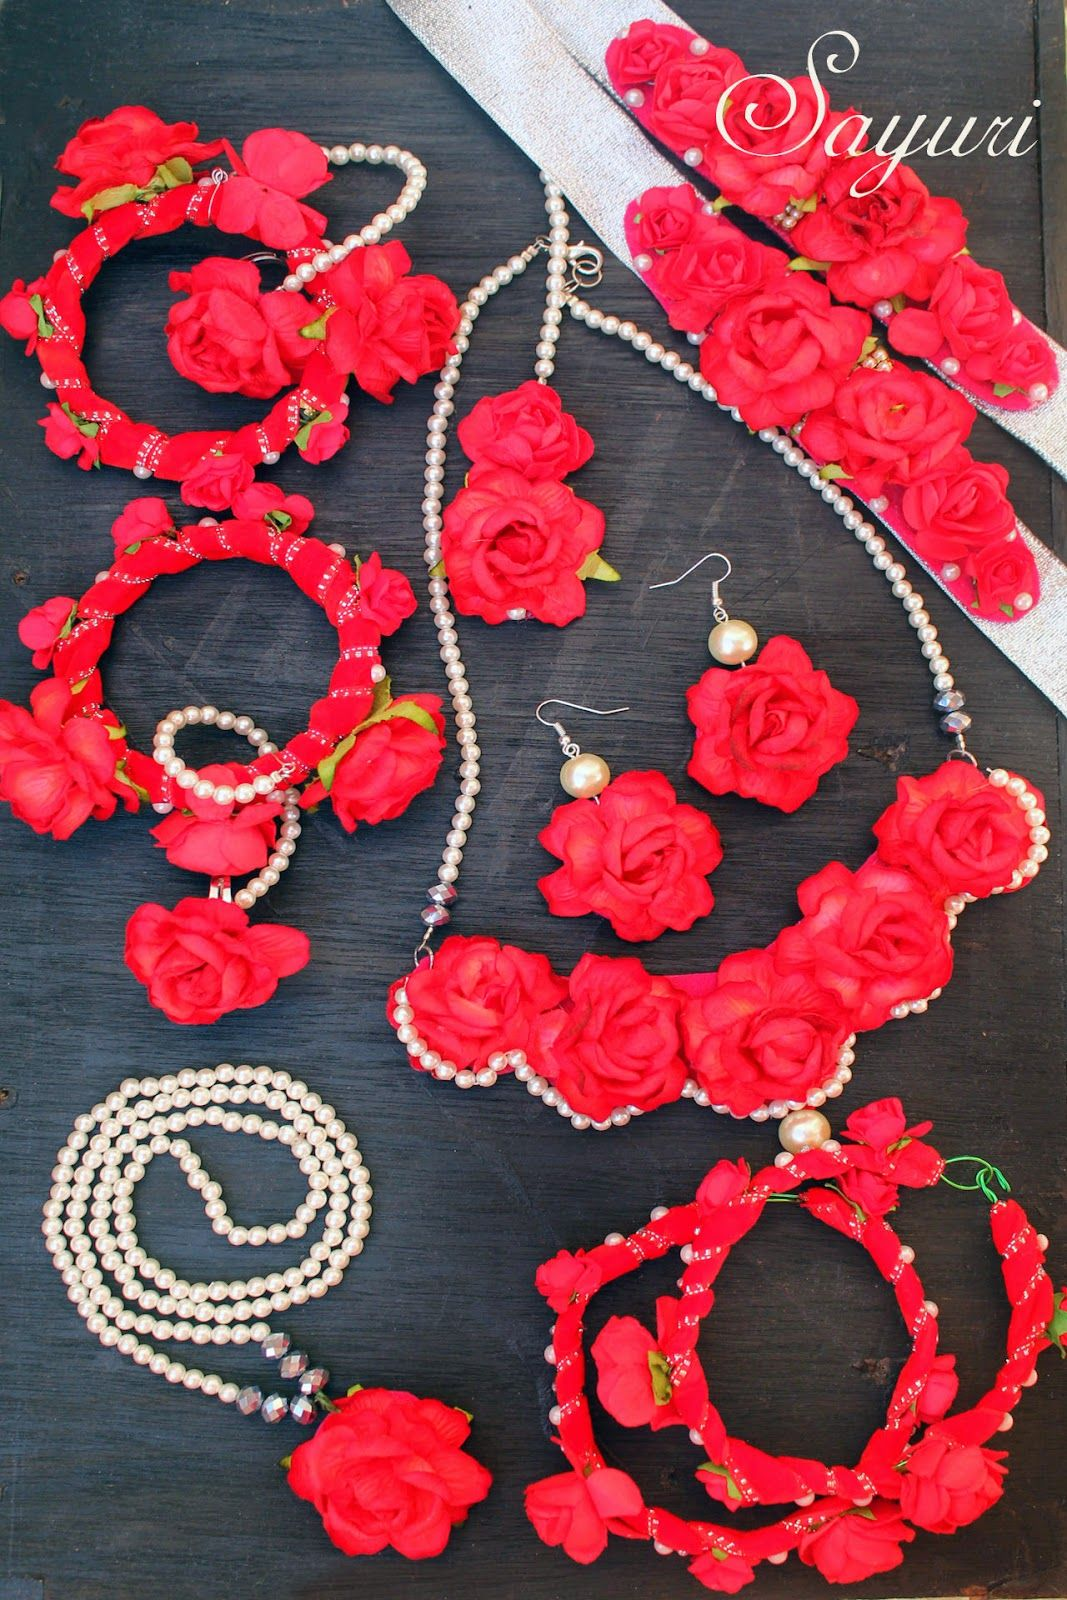 Craft Rose Flowers Pink Alloy Jewelry Craft